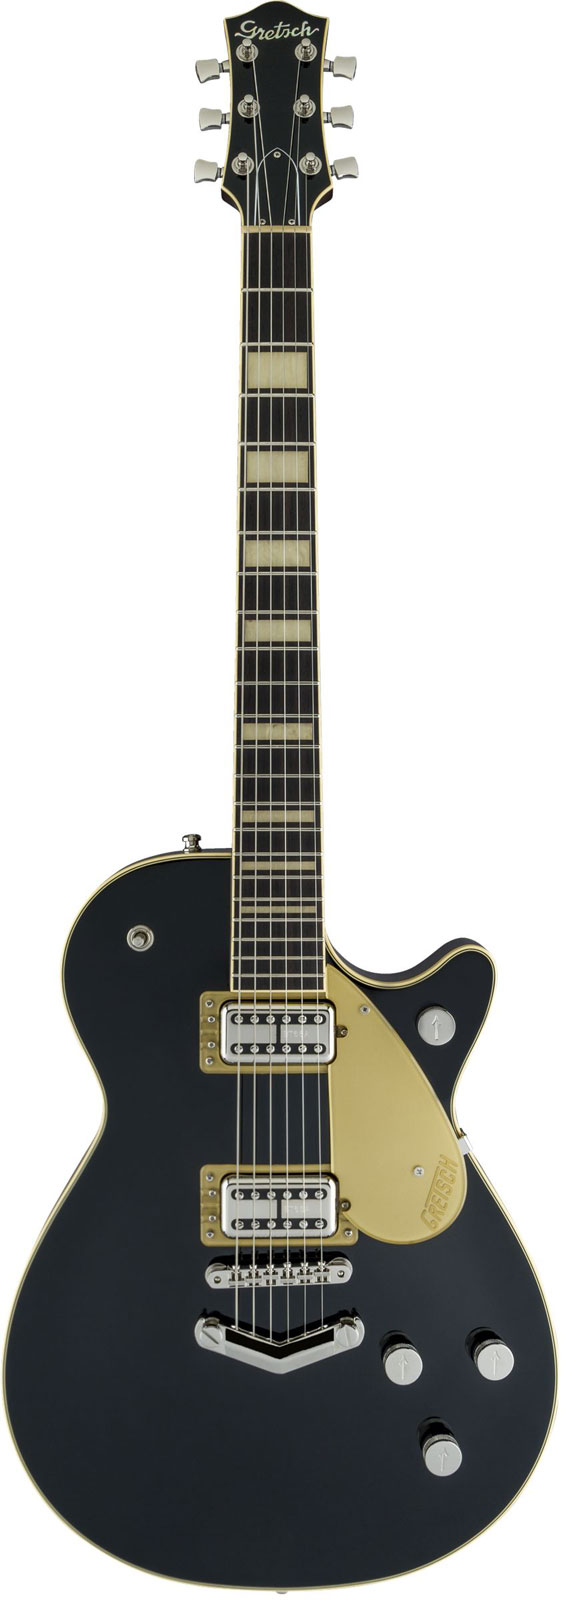 Gretsch Guitars G6228 Players Edition Jet Bt With V-stoptail Rw Black